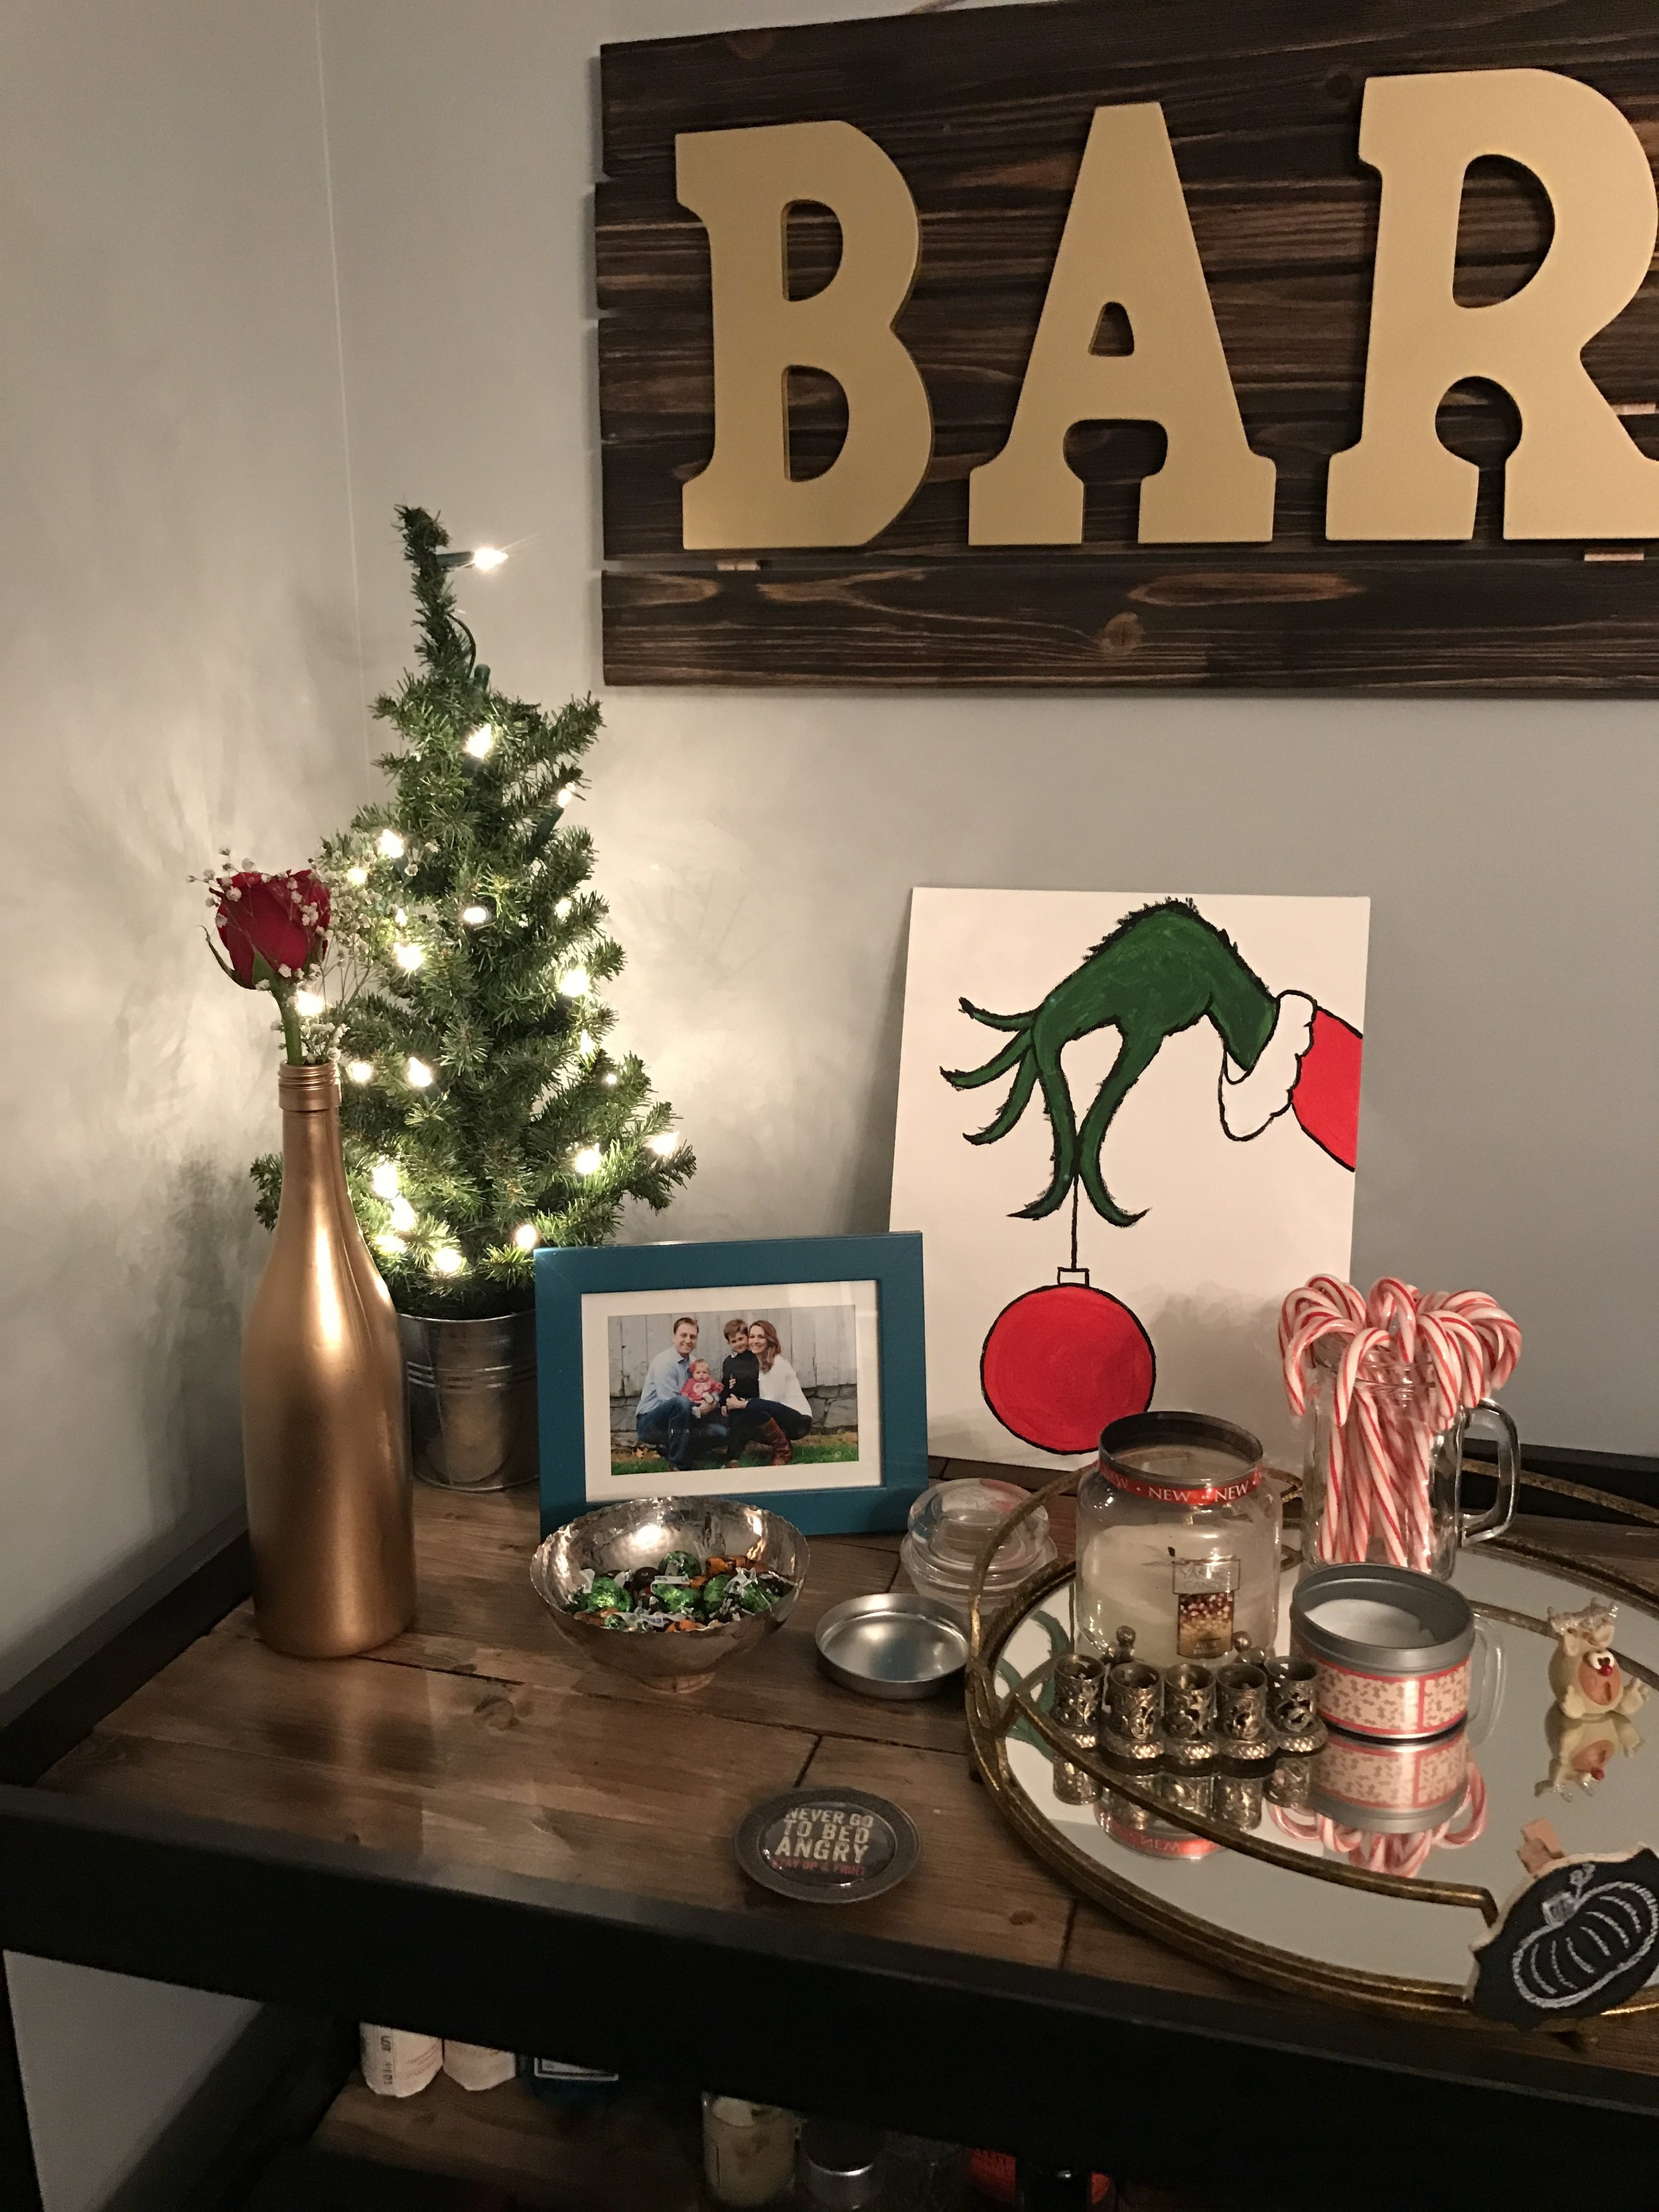 Decorated at Christmas. Christmas is my favorite holiday of all.